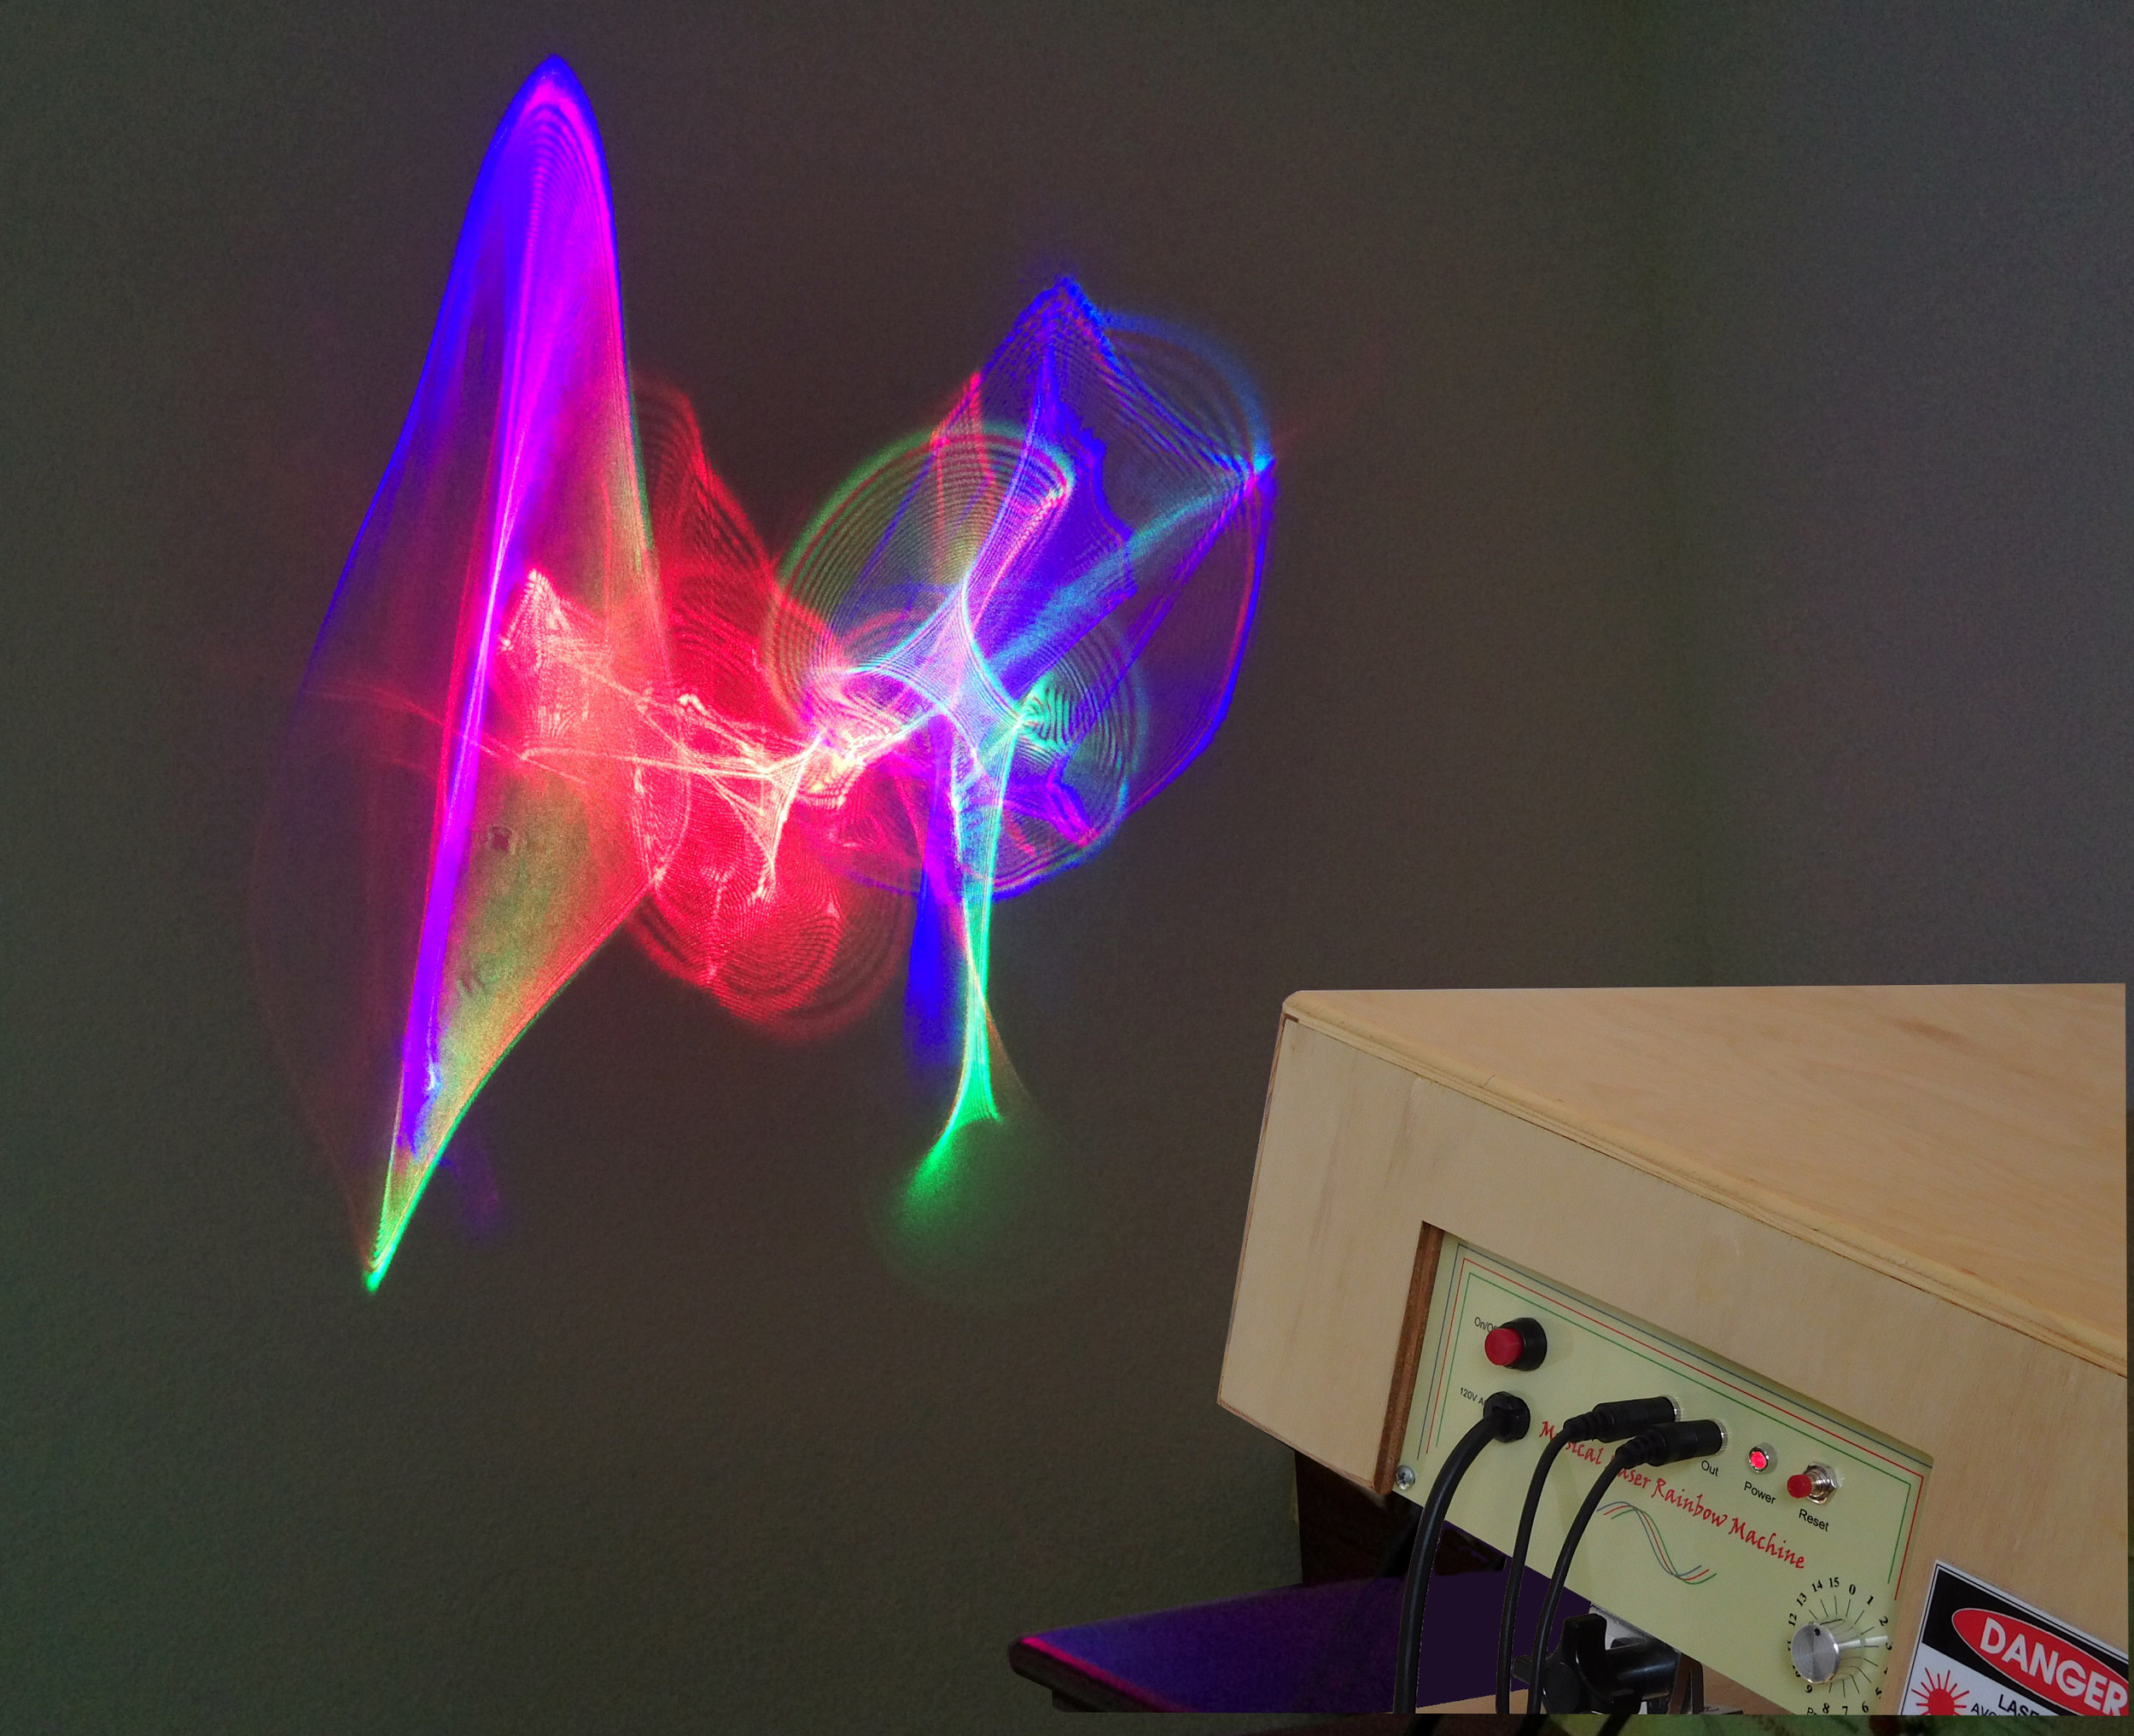 Musical Laser Rainbow Machine - Video